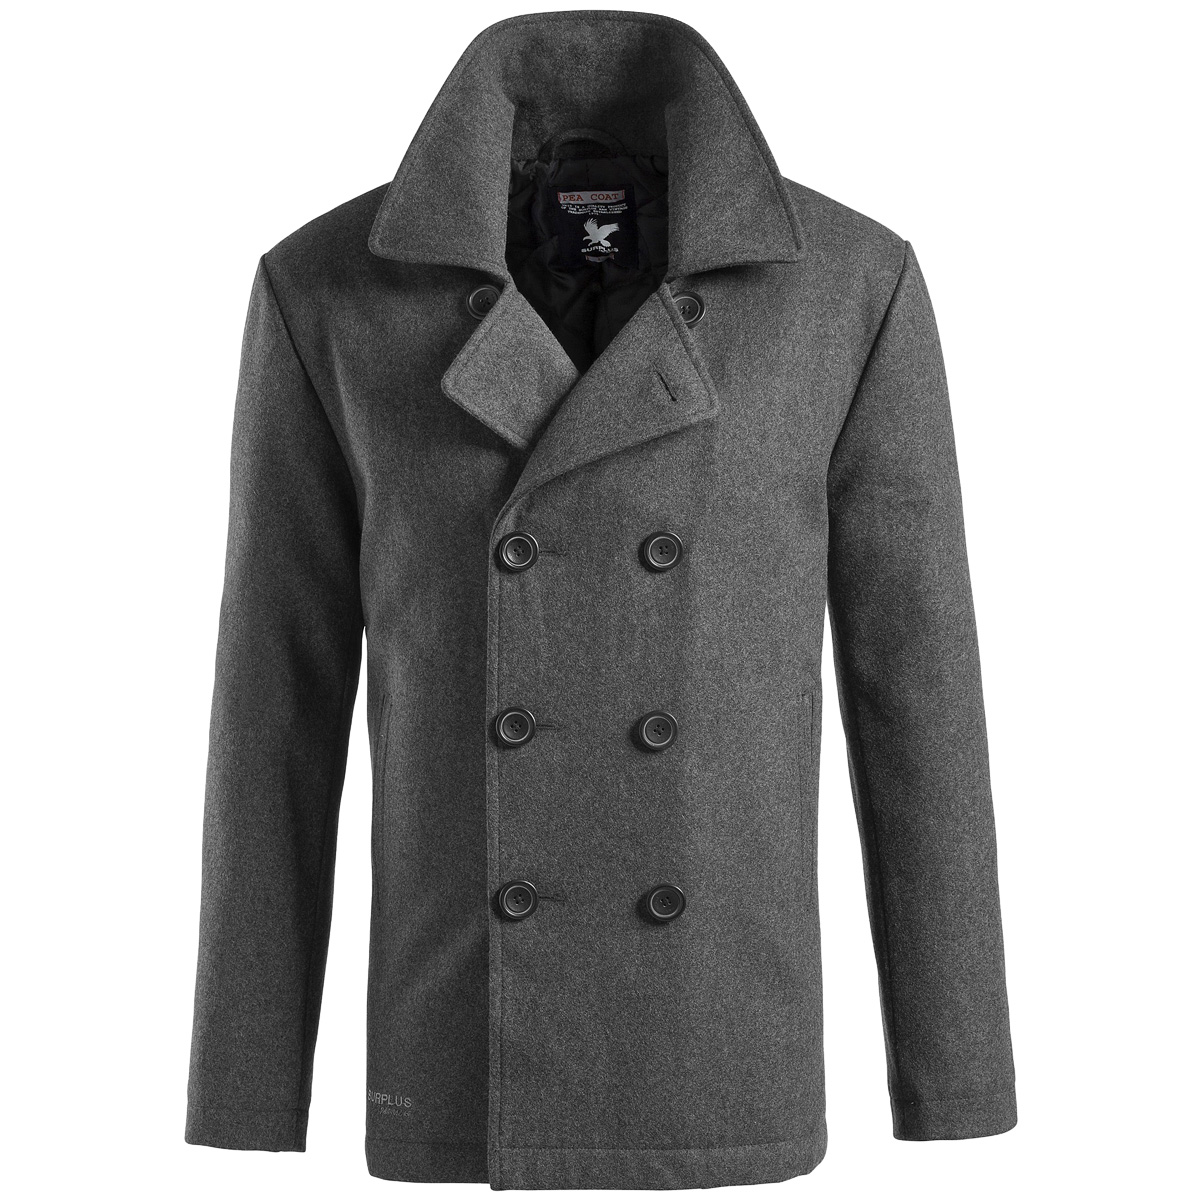 Surplus-Classic-Navy-Pea-Coat-Warm-Mens-Winter-Wool-Reefer-Jacket-Anthracite